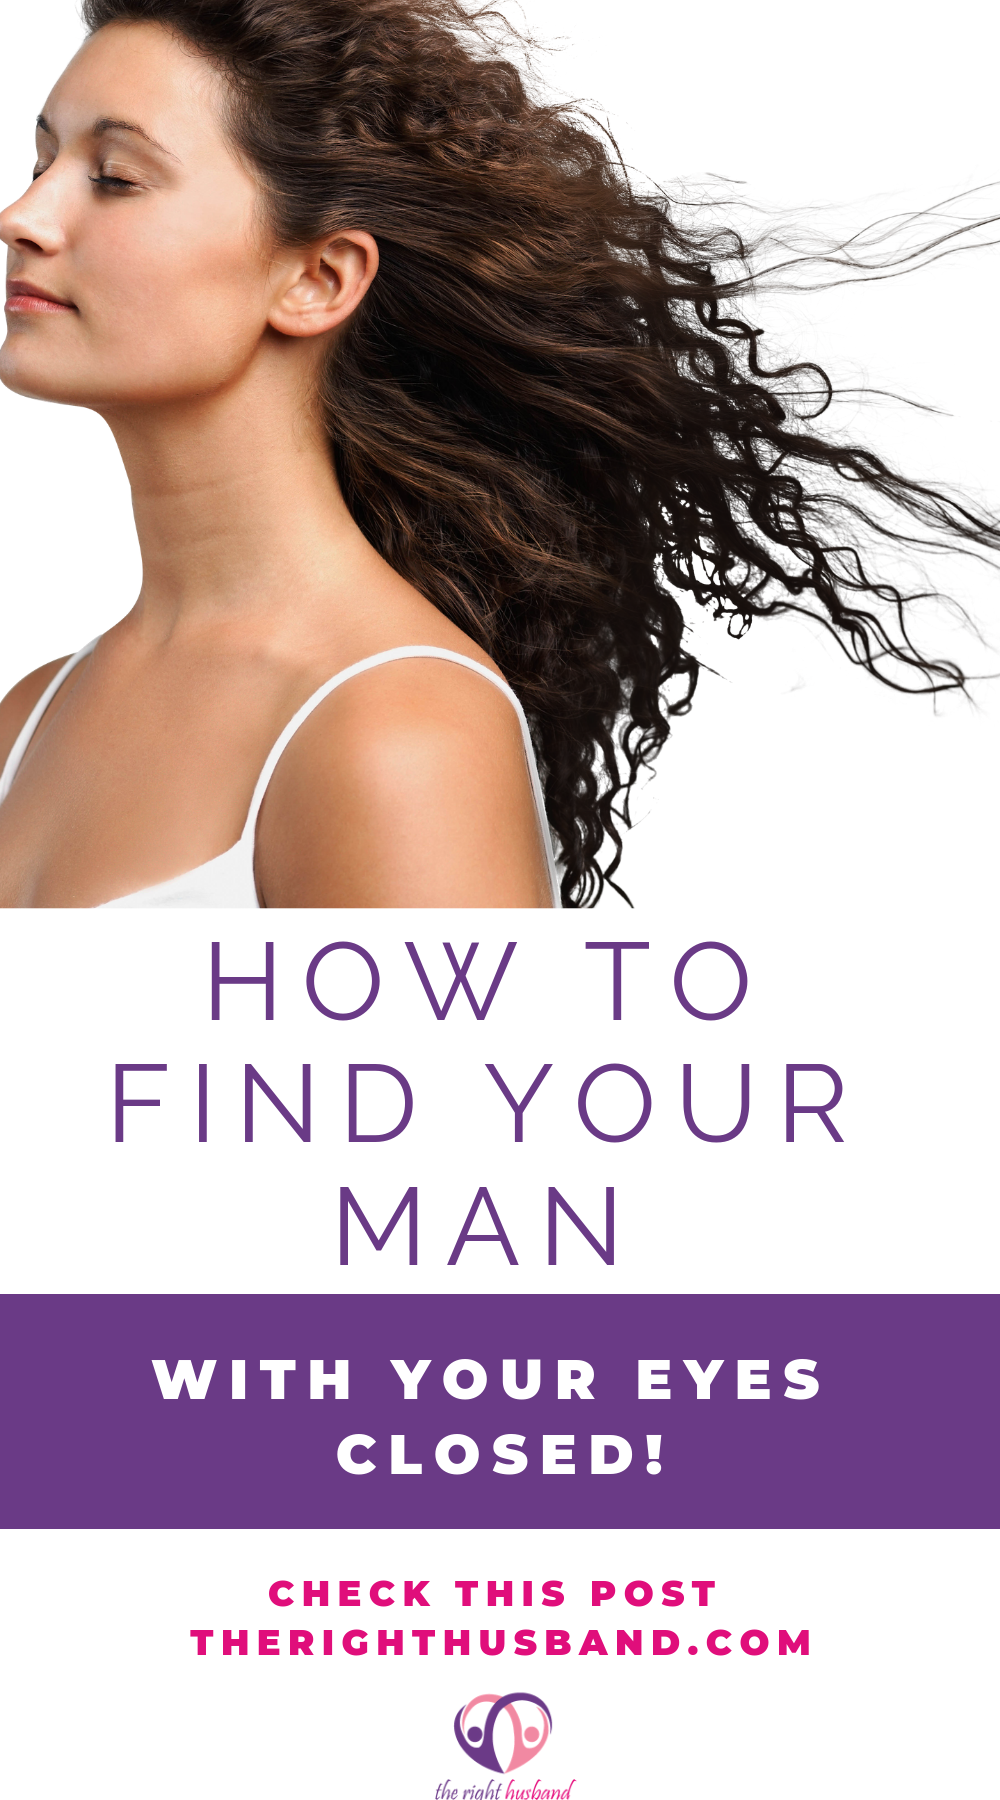 How to find your man with your eyes closed